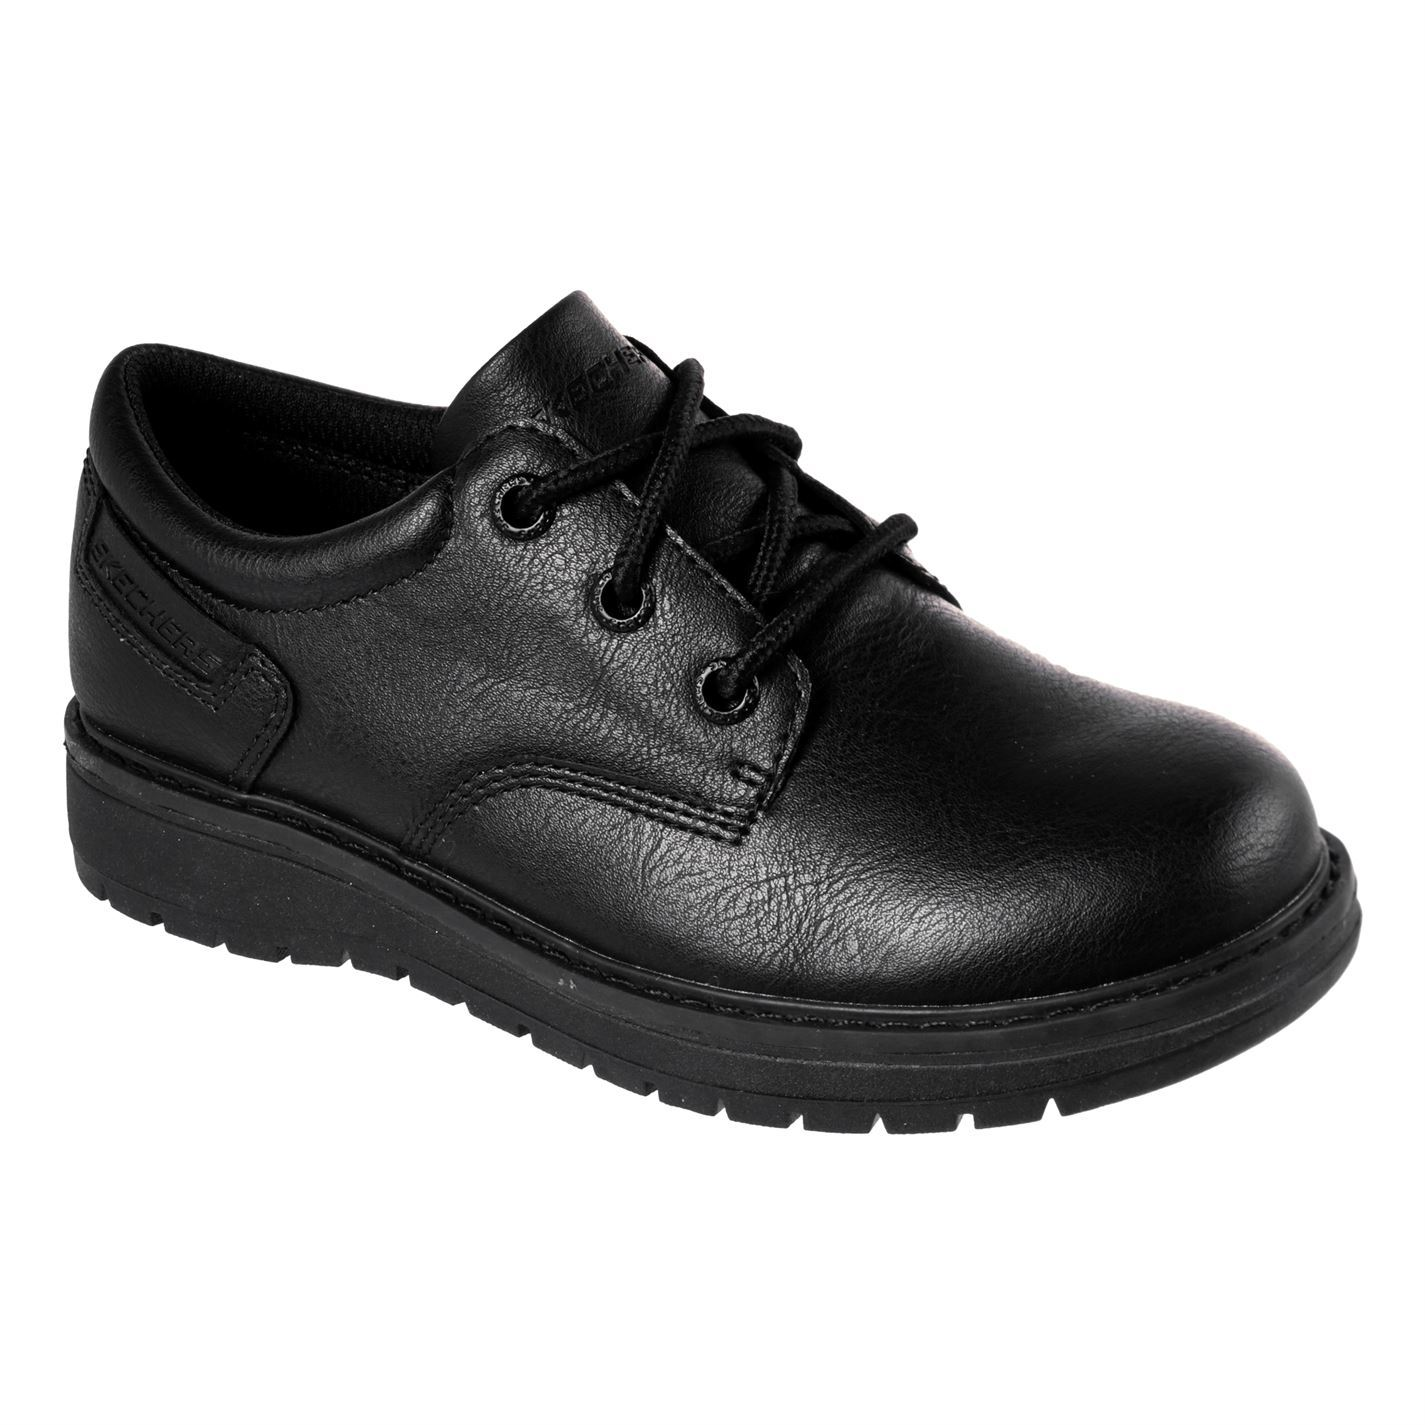 Boys School Shoes Goody2Shoes BTS Childrens School Shoes Childs to Junior Sizes